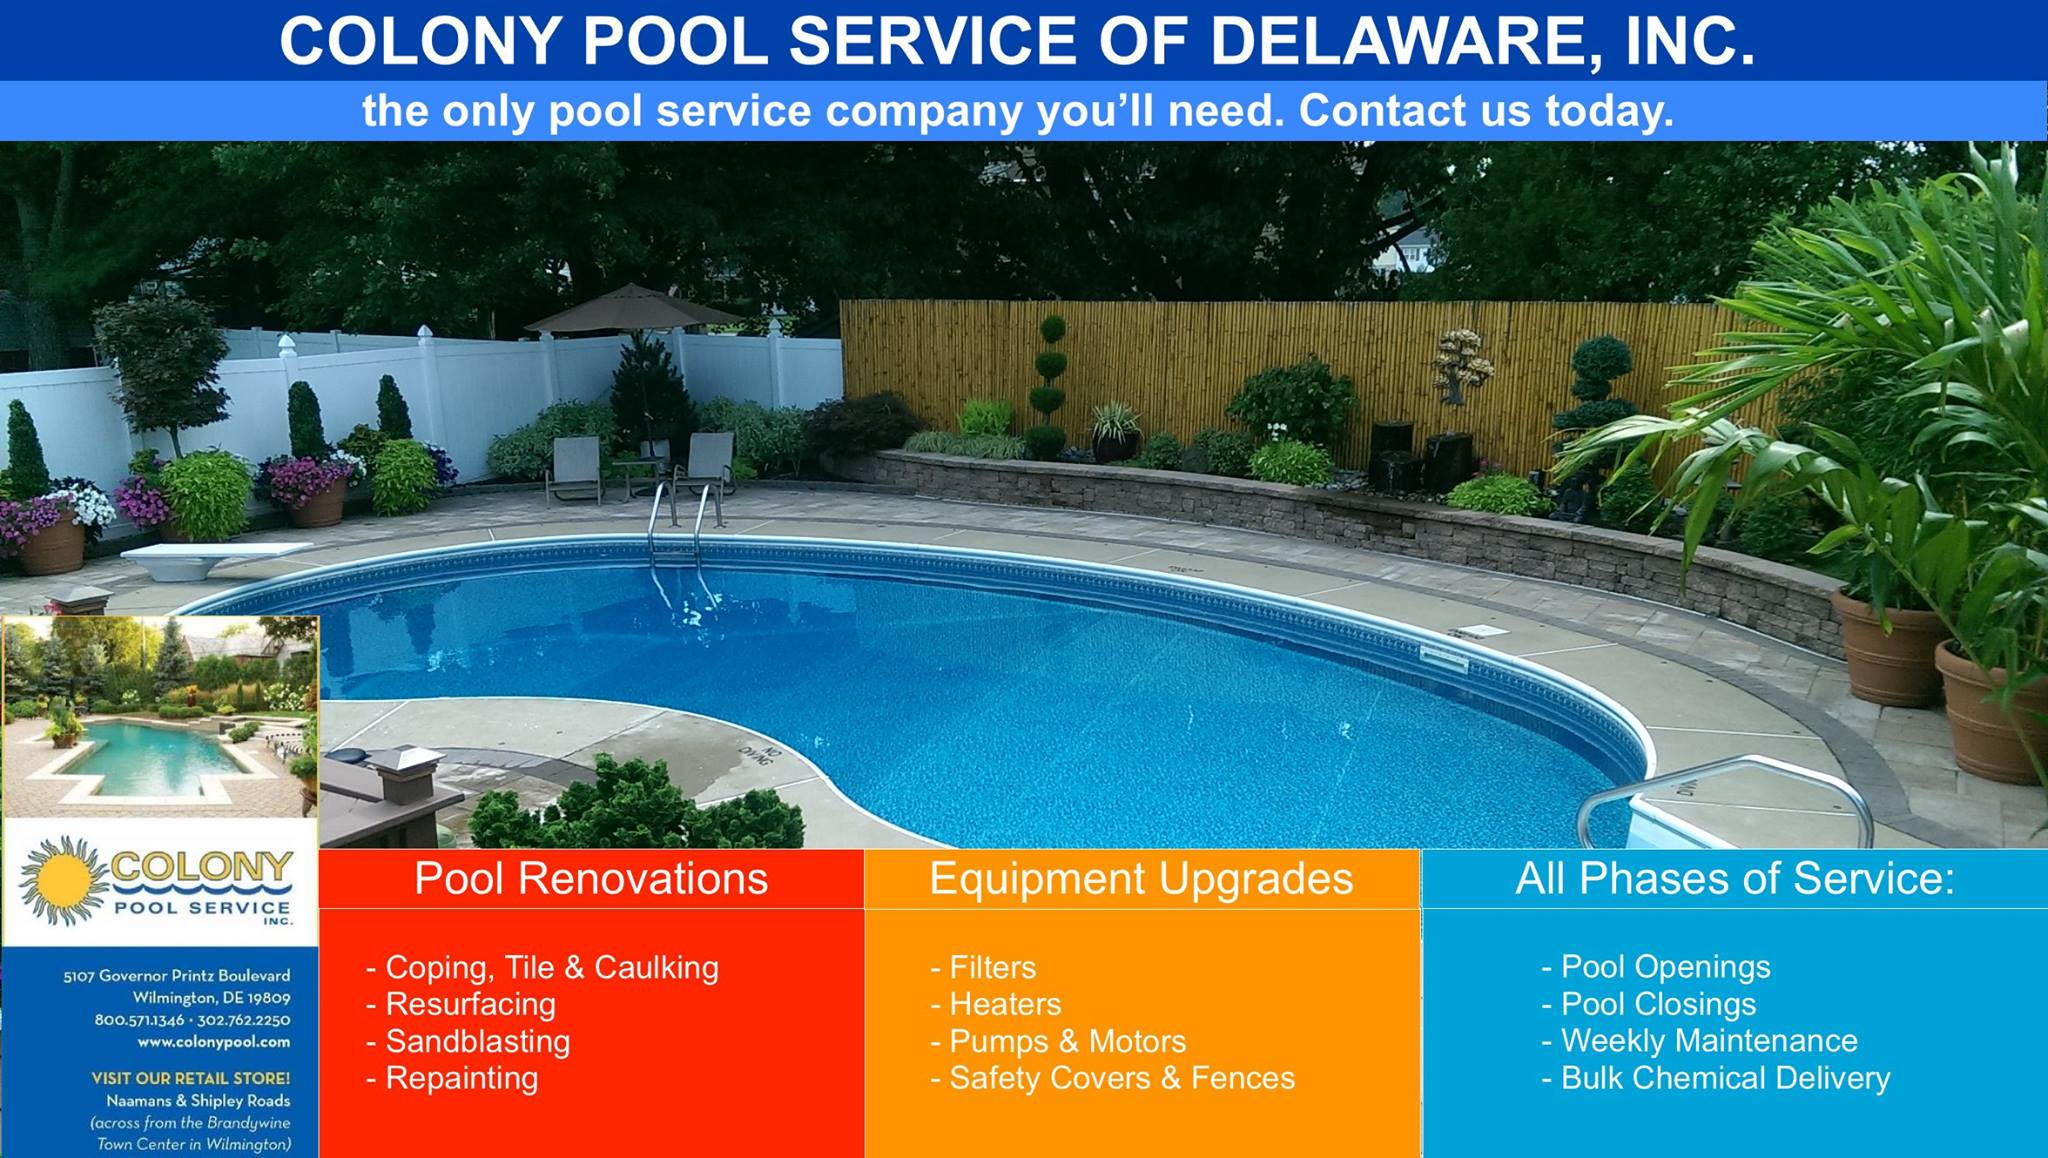 All Phases of Swimming Pool Services